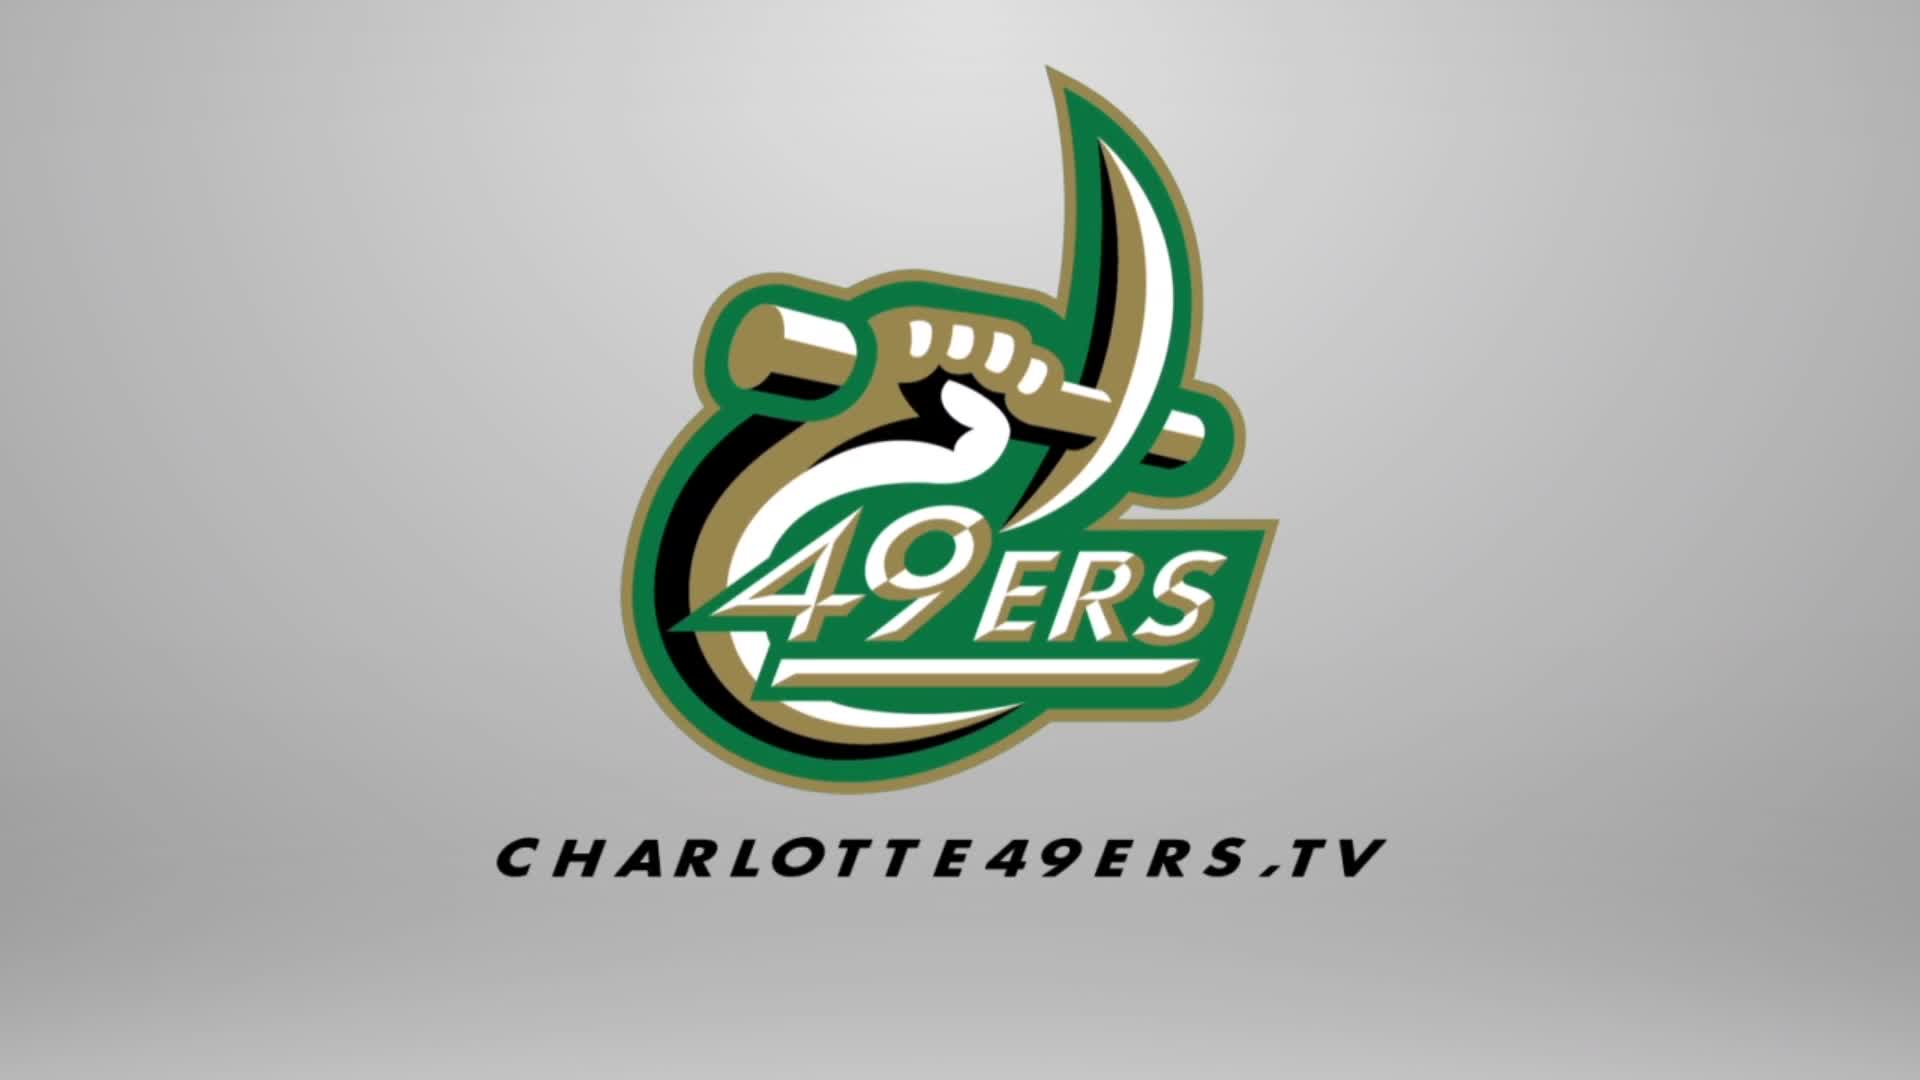 Uncc Football Schedule 2020 49ers Add SEC Foes to Future Slates   Charlotte Athletics